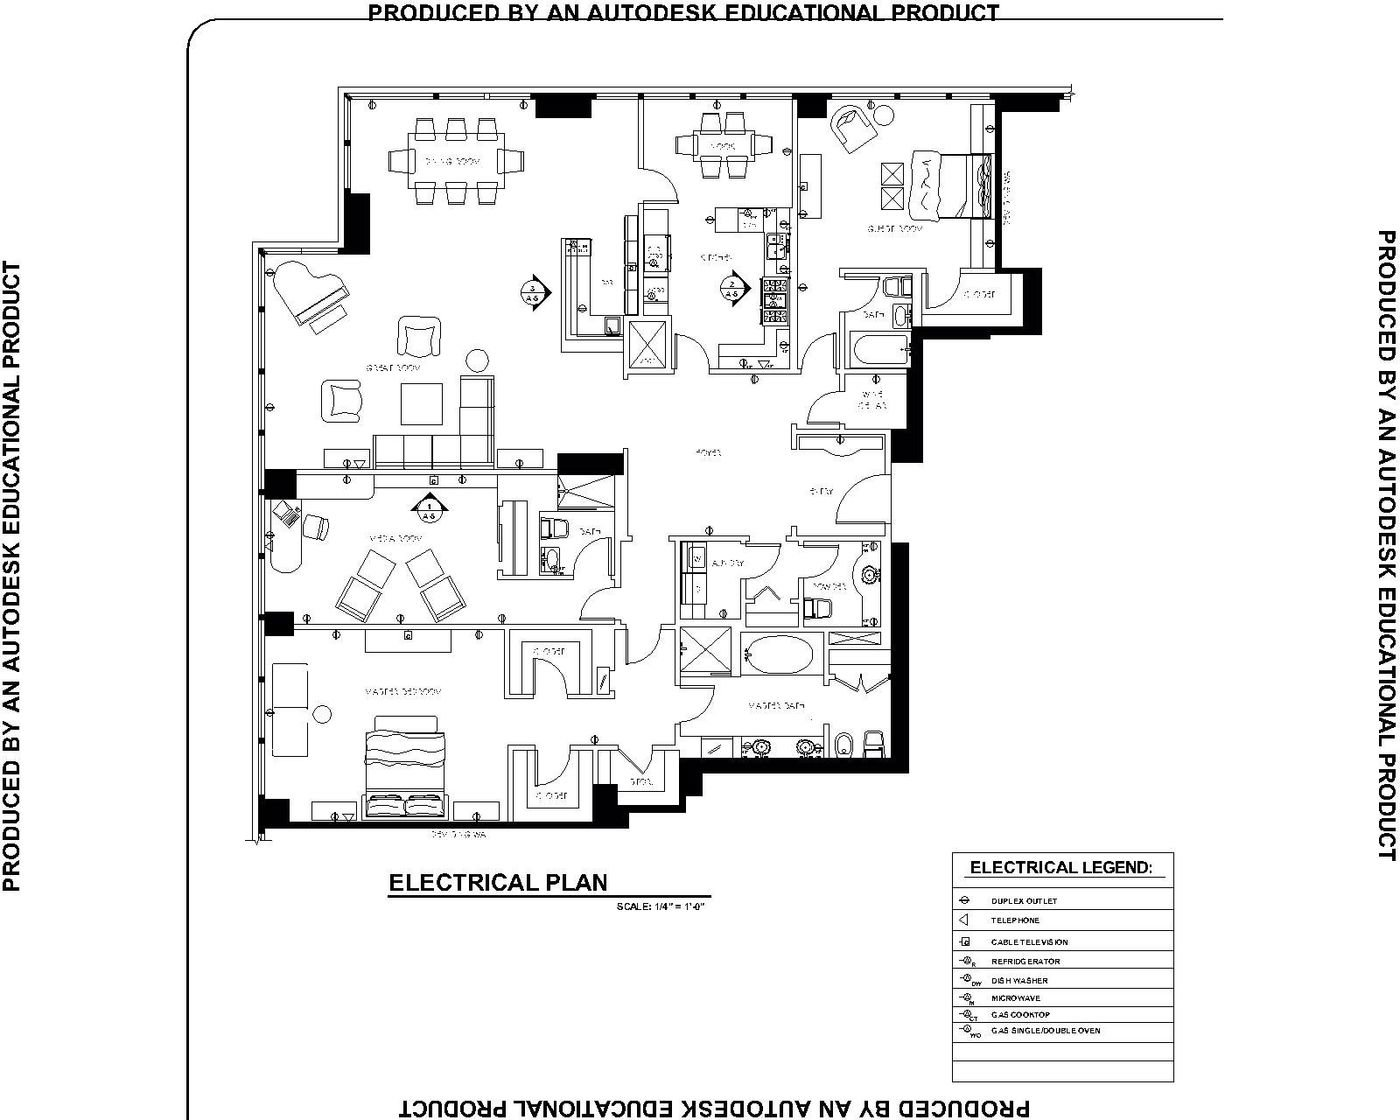 Lighting Residential: Electrical Plan